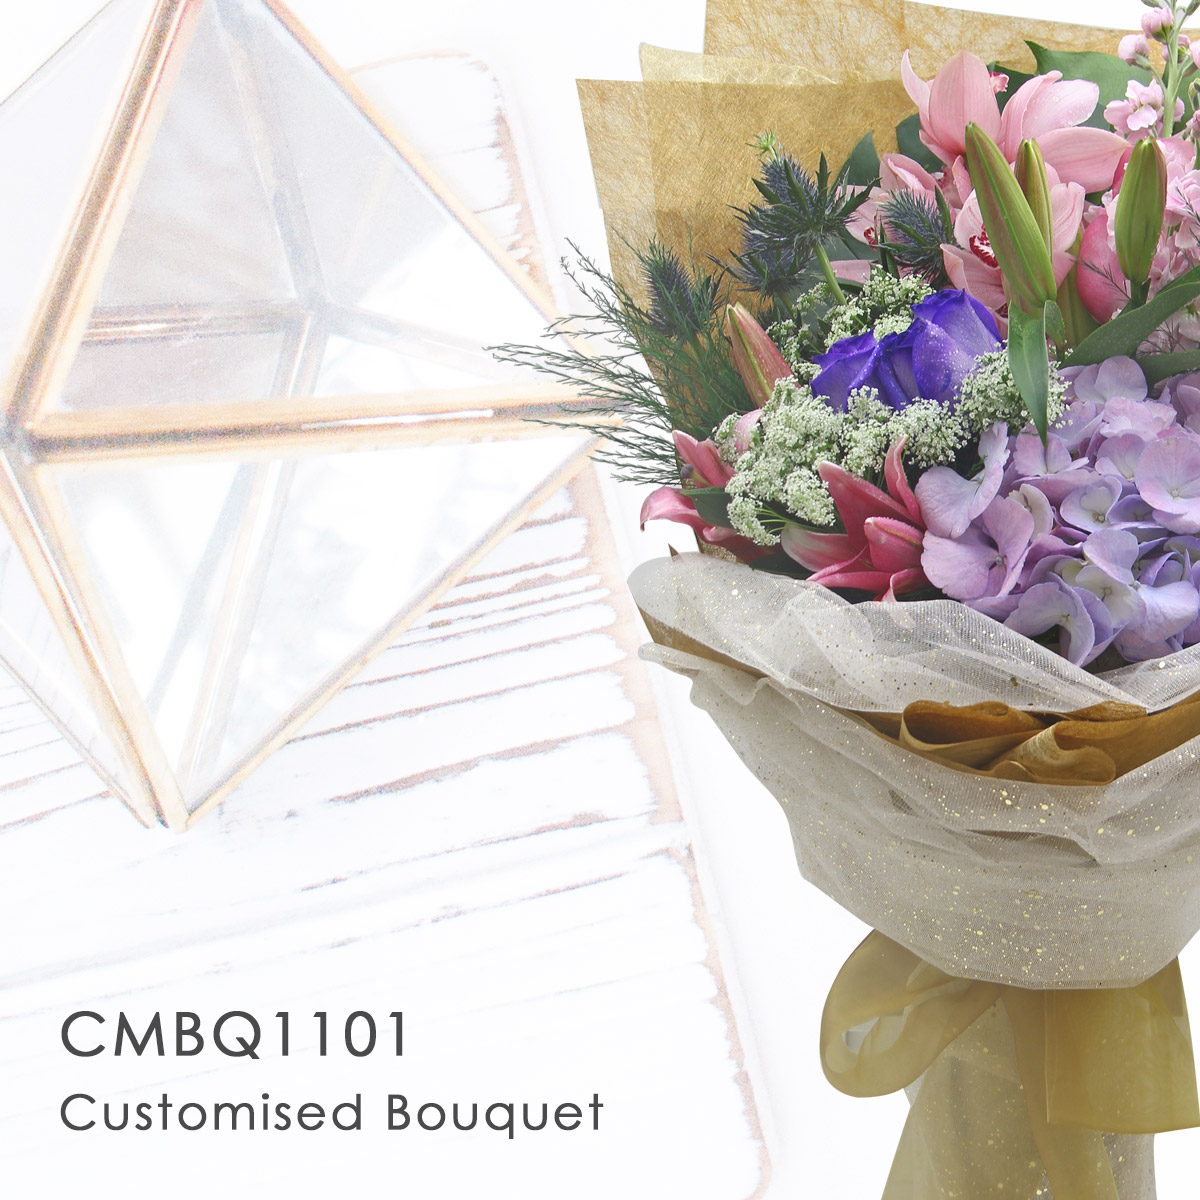 Customised Hand Bouquet